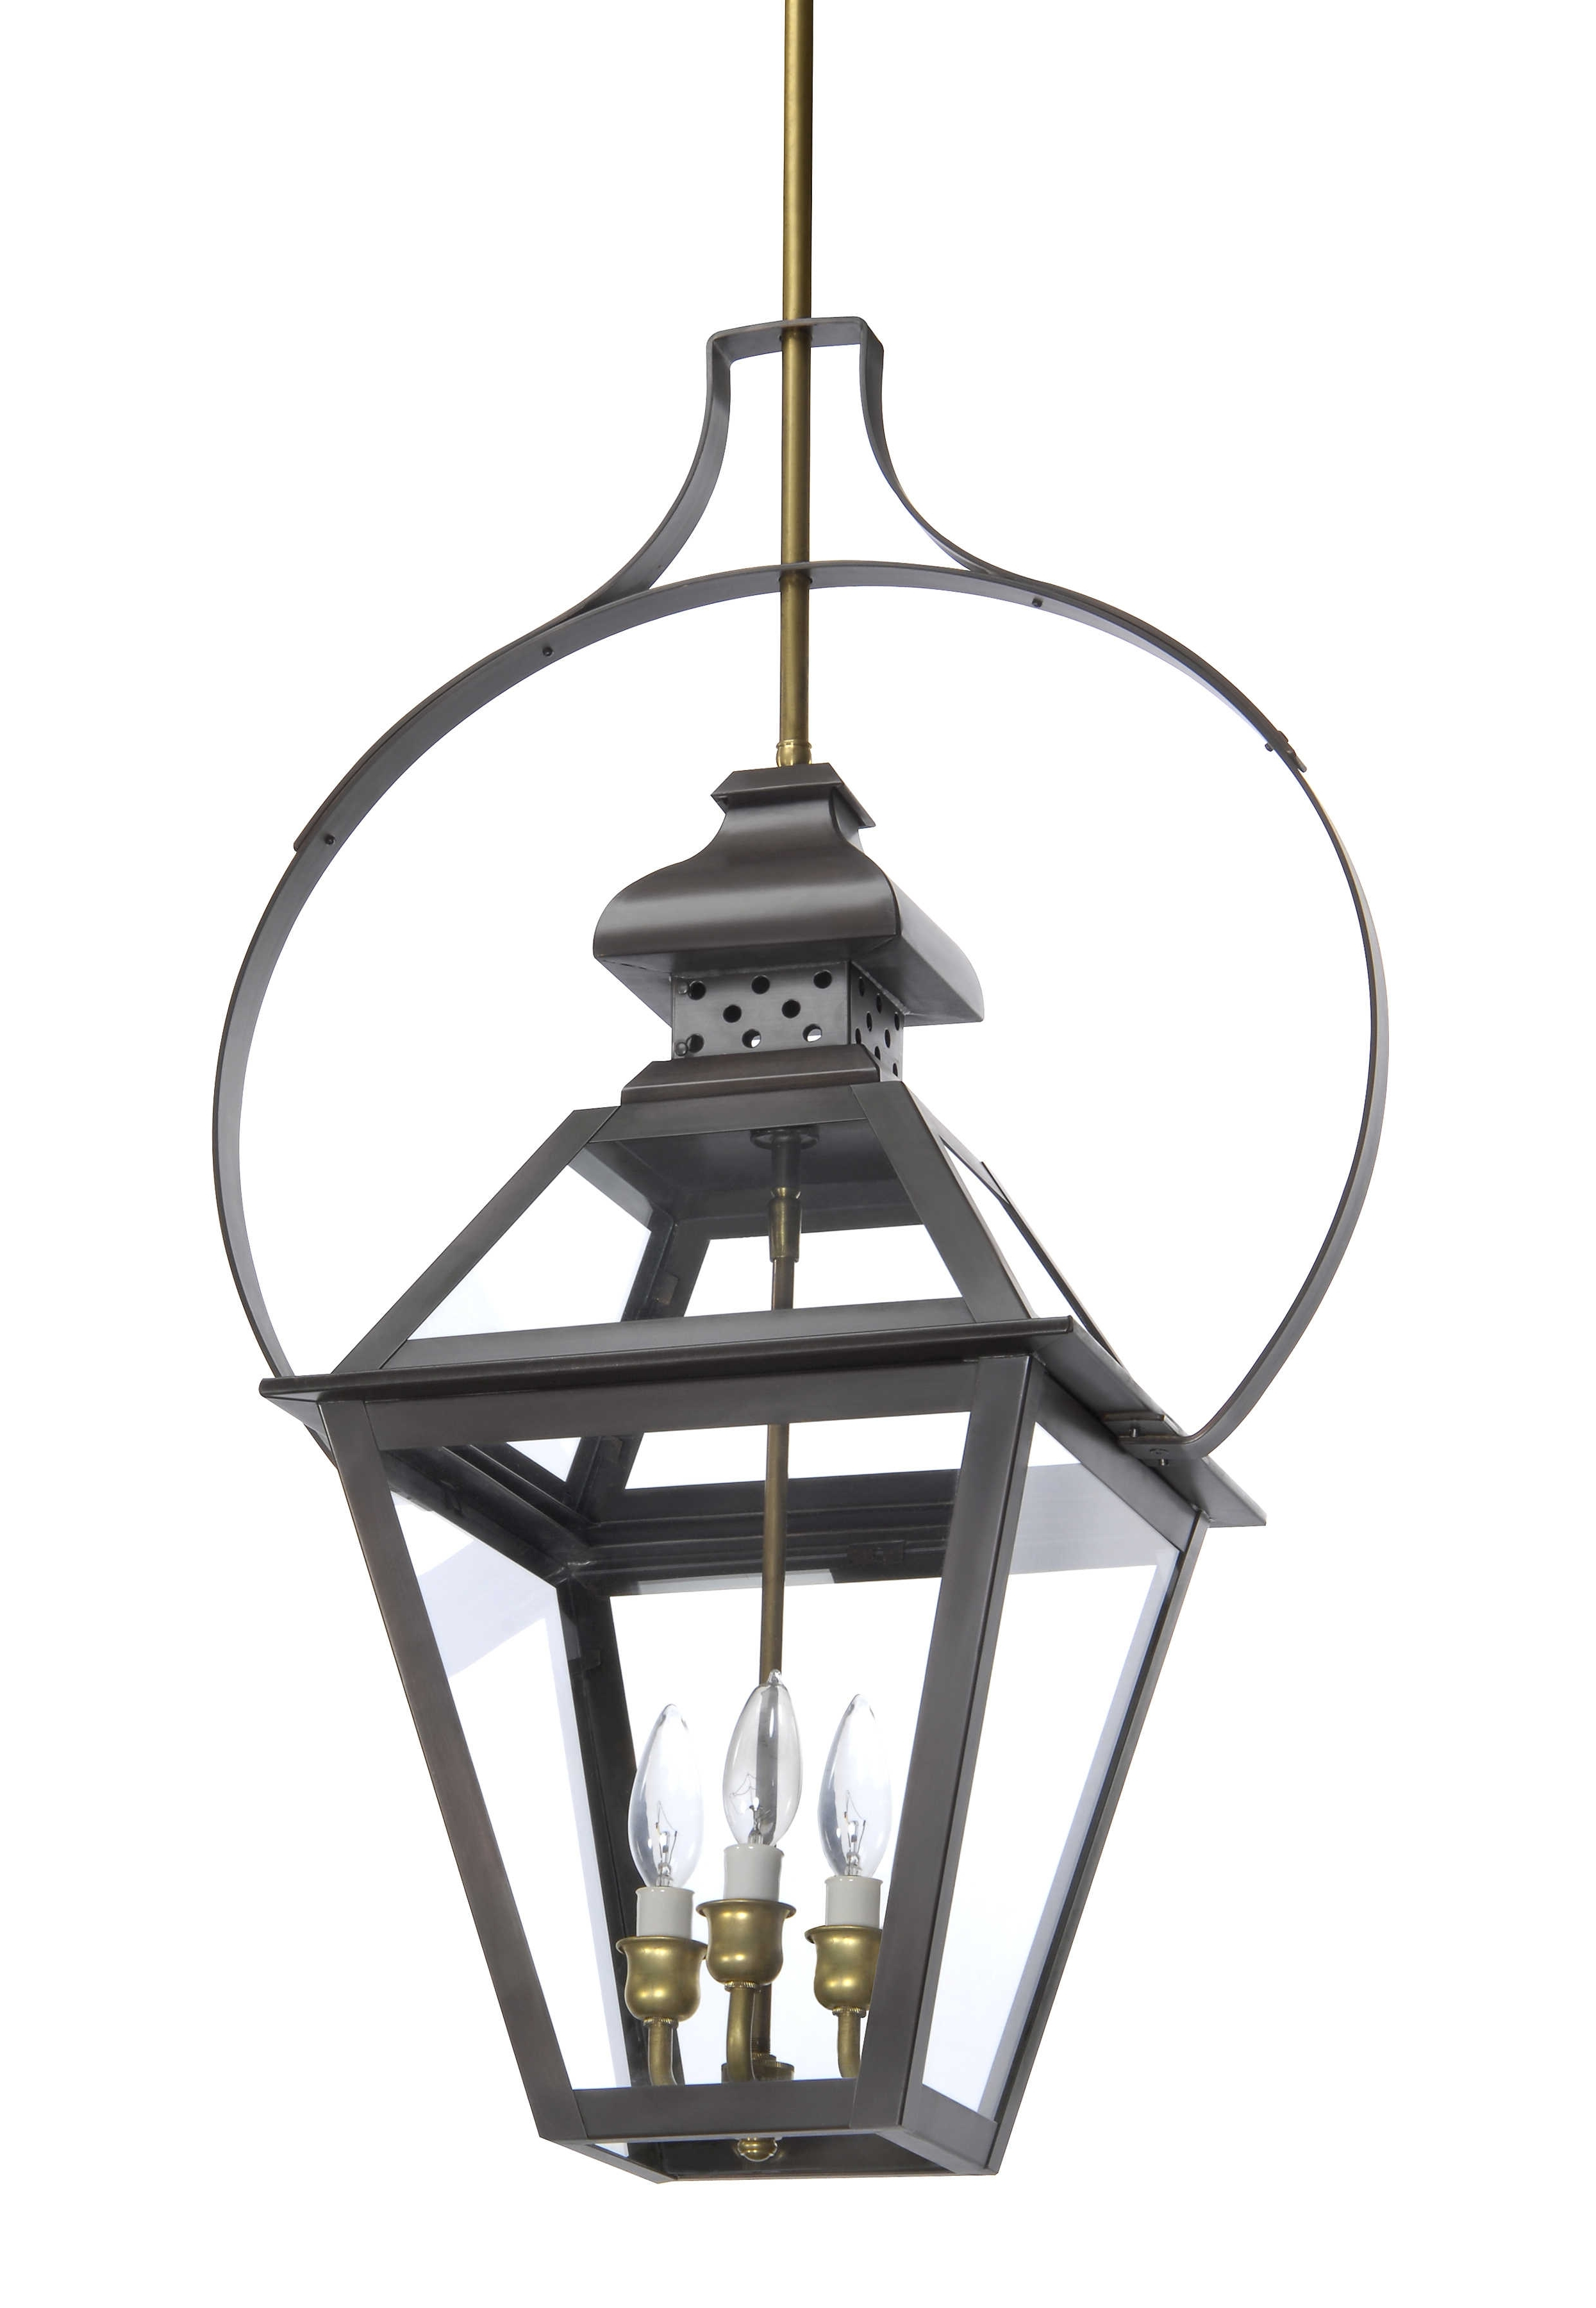 2019 Outdoor Hanging Electric Lanterns Inside Tradd Street Collection (View 14 of 20)